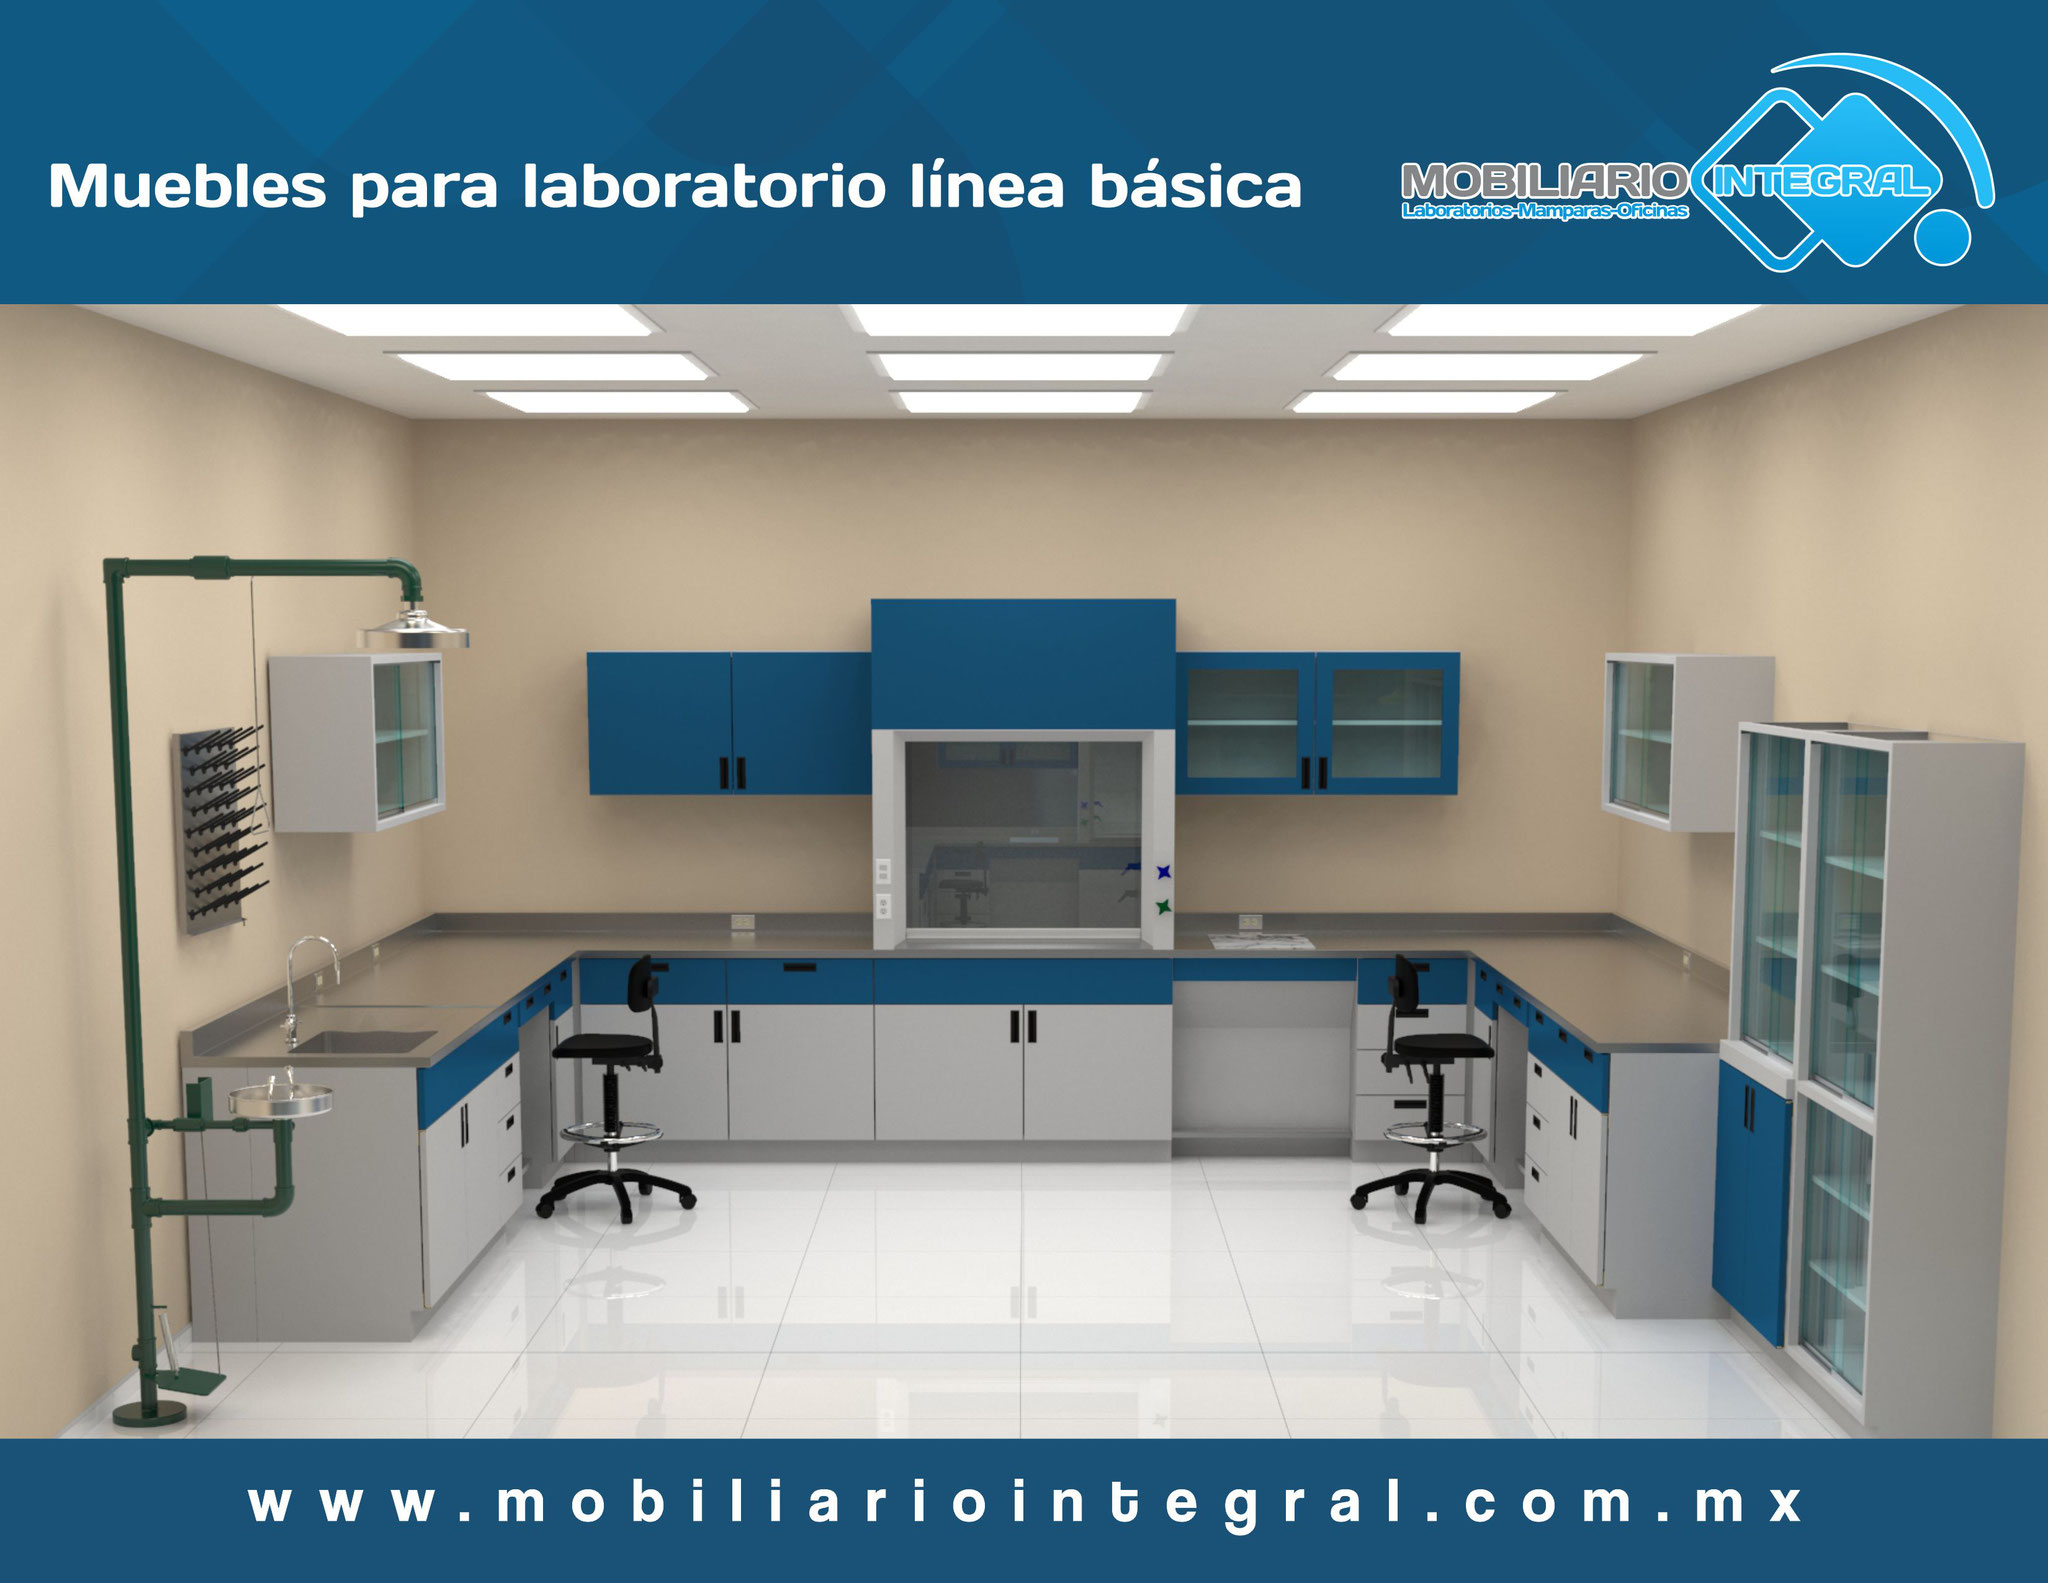 Muebles para laboratorio en Santa Catarina